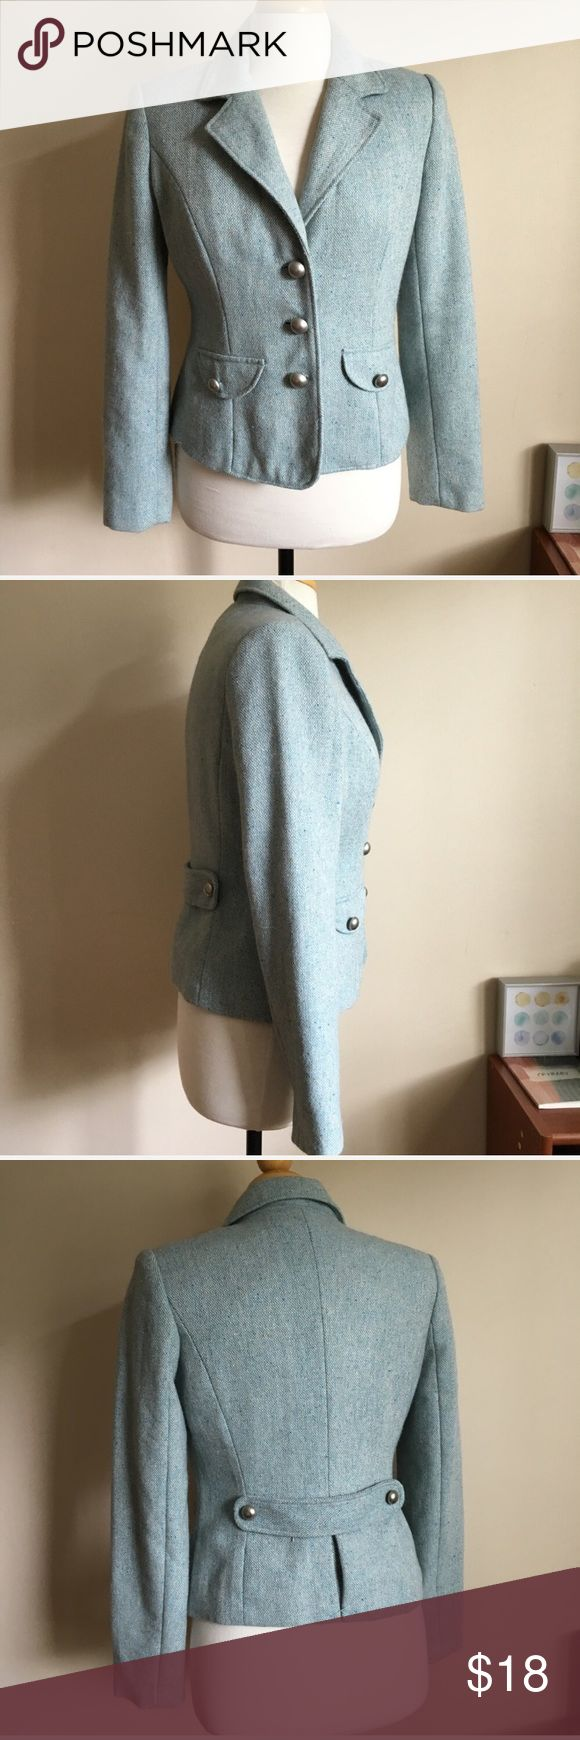 Merona Light Blue Military Style Jacket Perfect for fall! Soft blue Tweed color. Silver military style buttons. Excellent used condition. Live long and poshper 🖖🏼 Merona Jackets & Coats Blazers